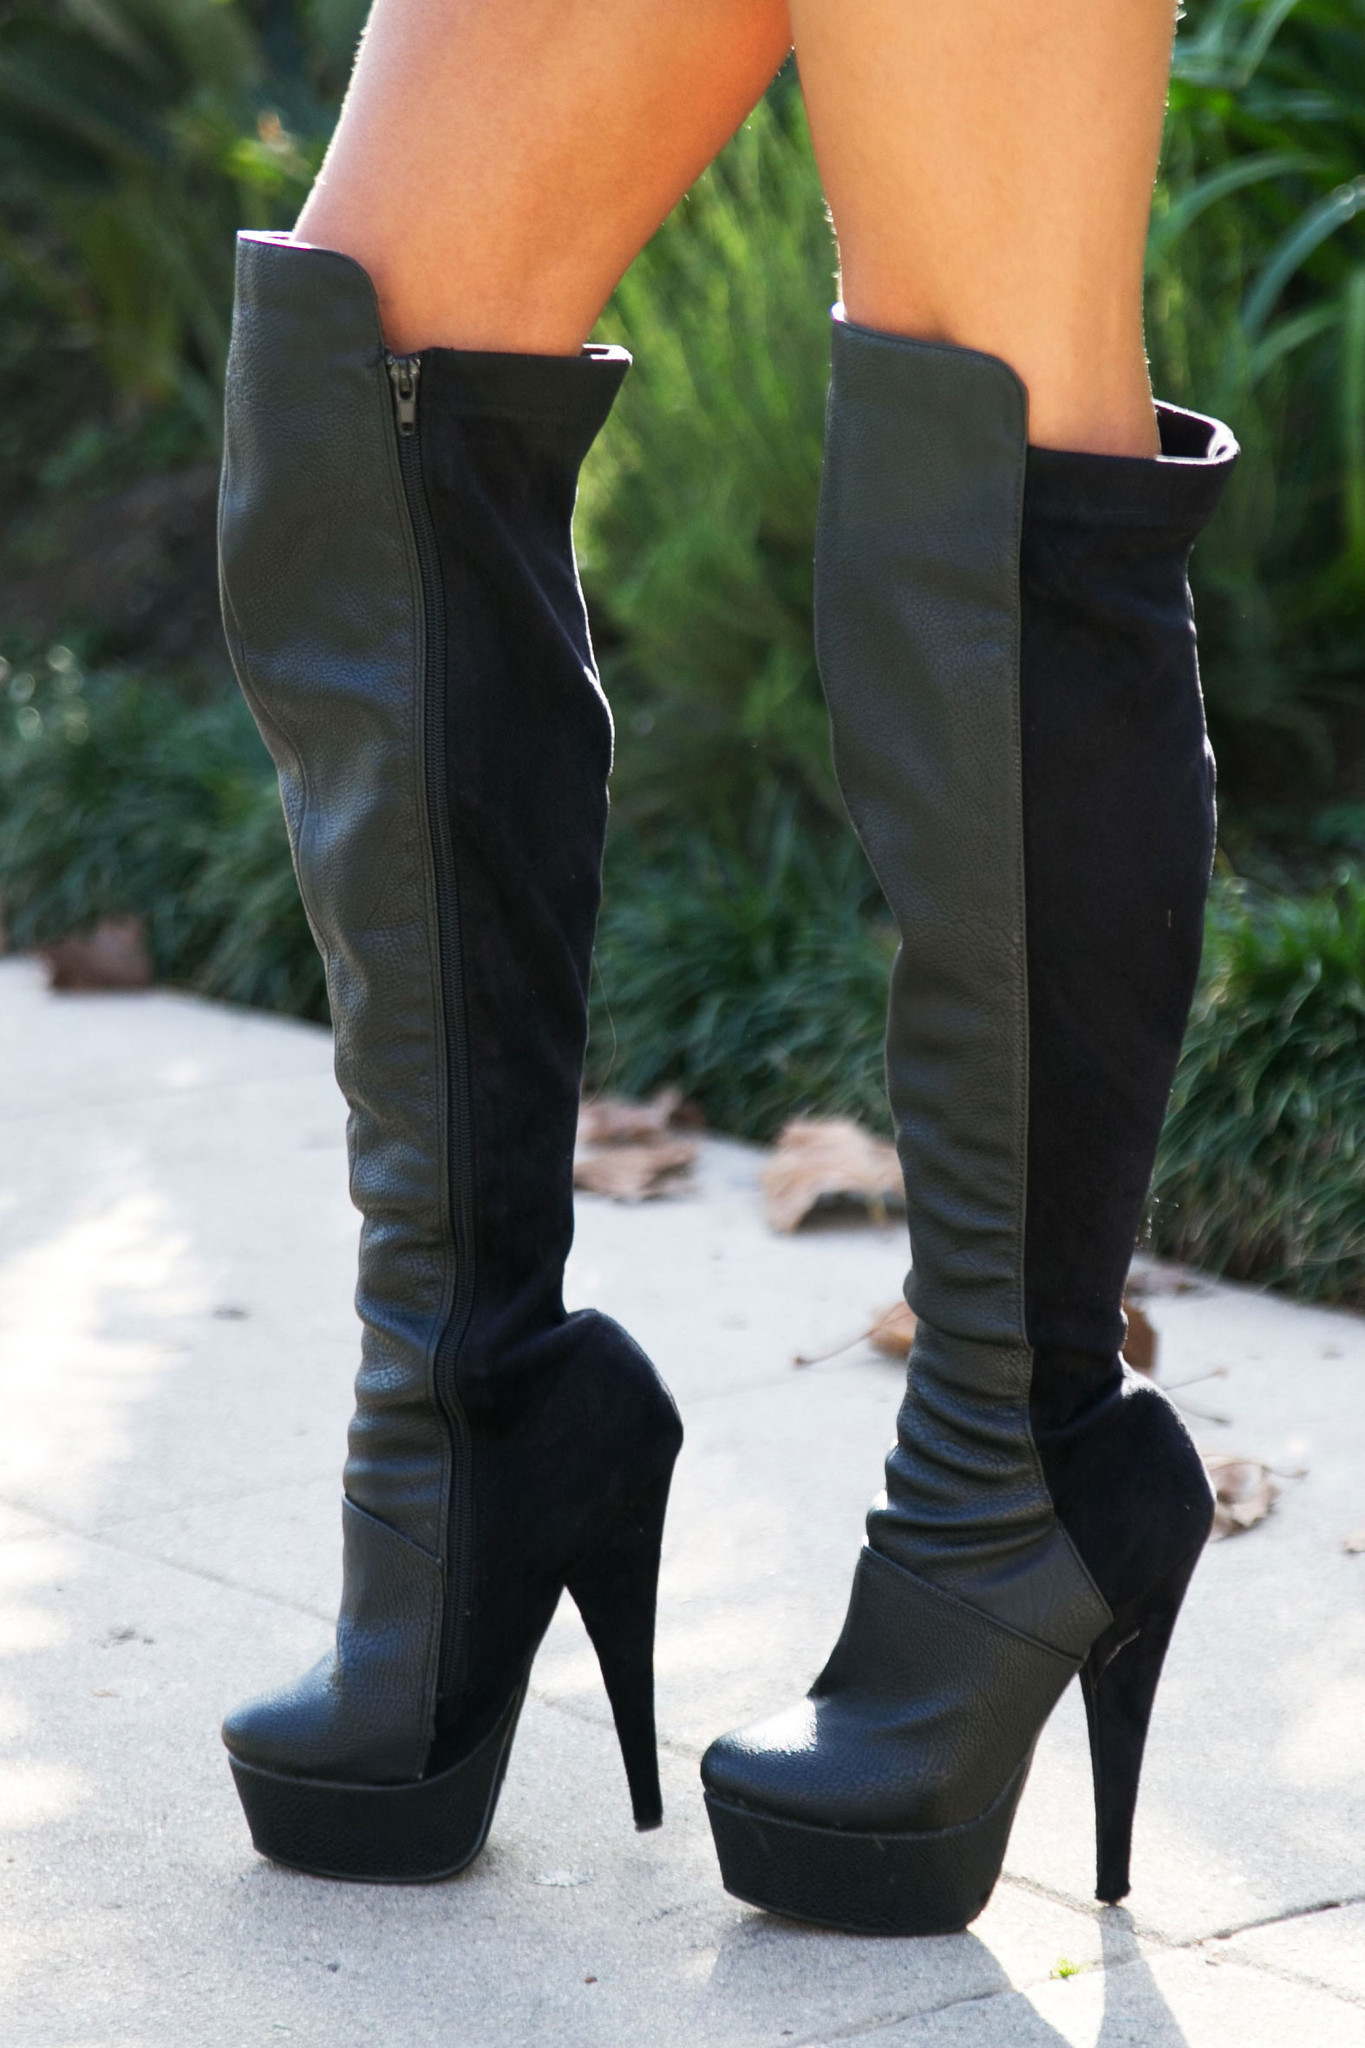 Brin knee high boots